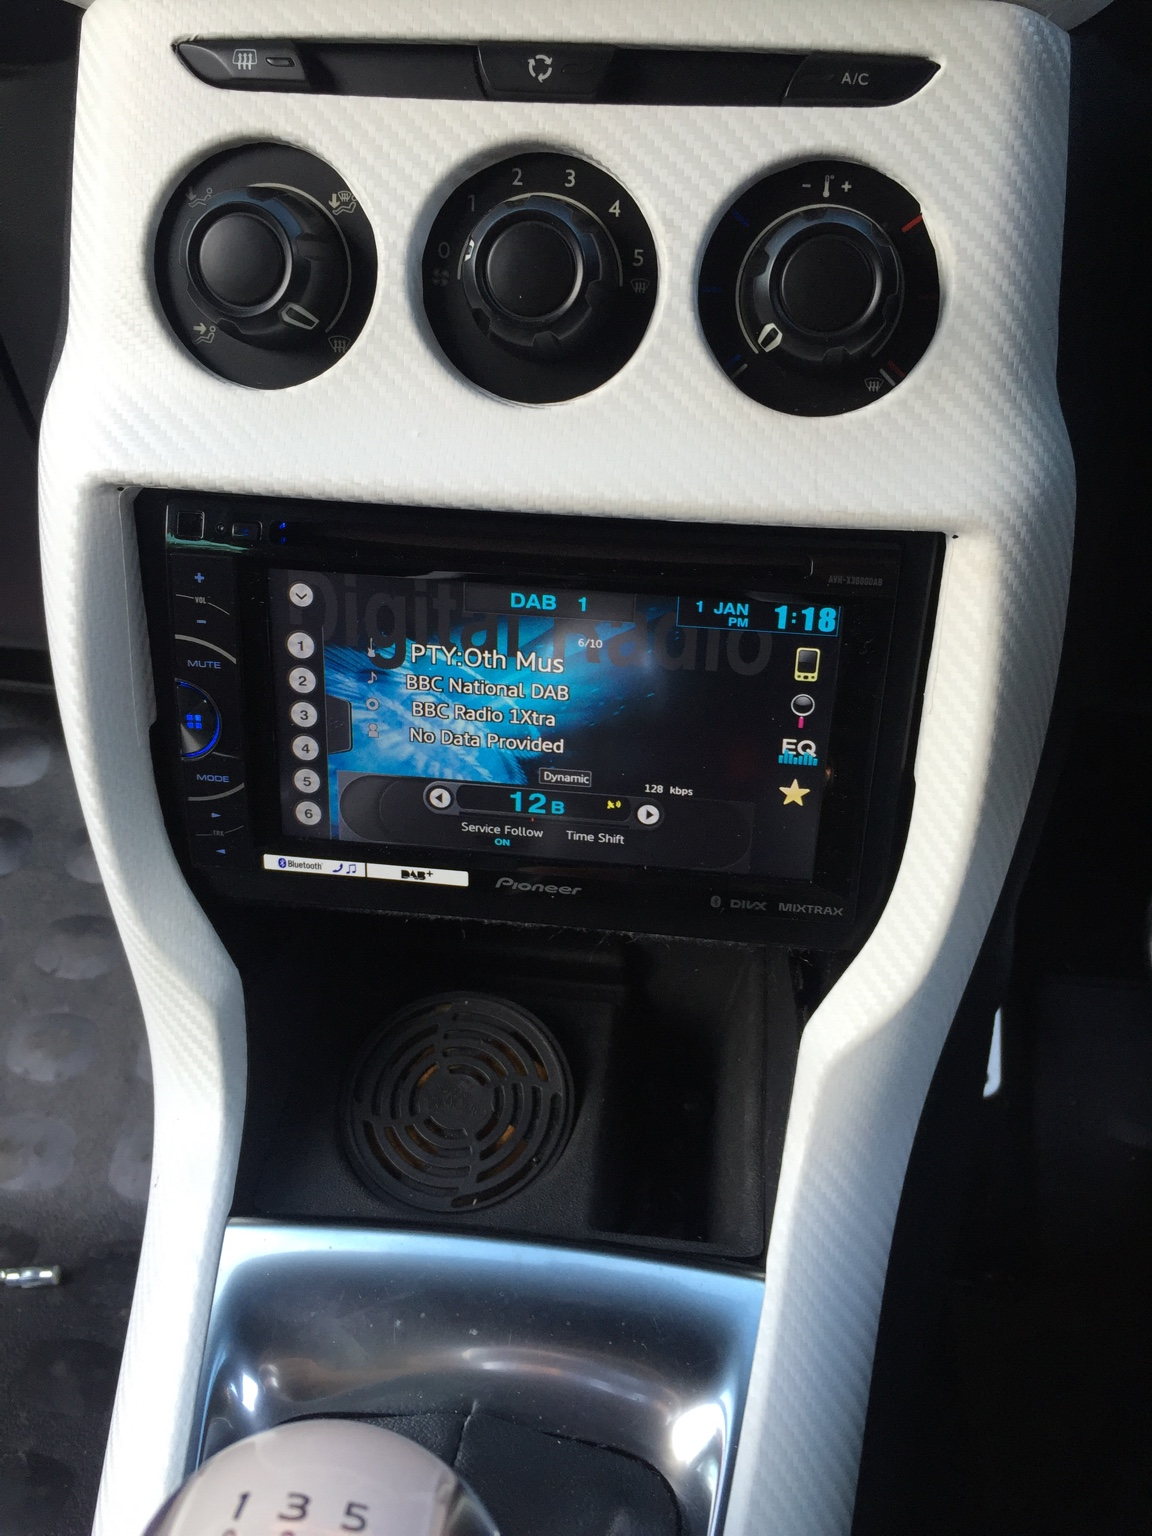 Dashboard mod to include touchscreen - questions - DS3